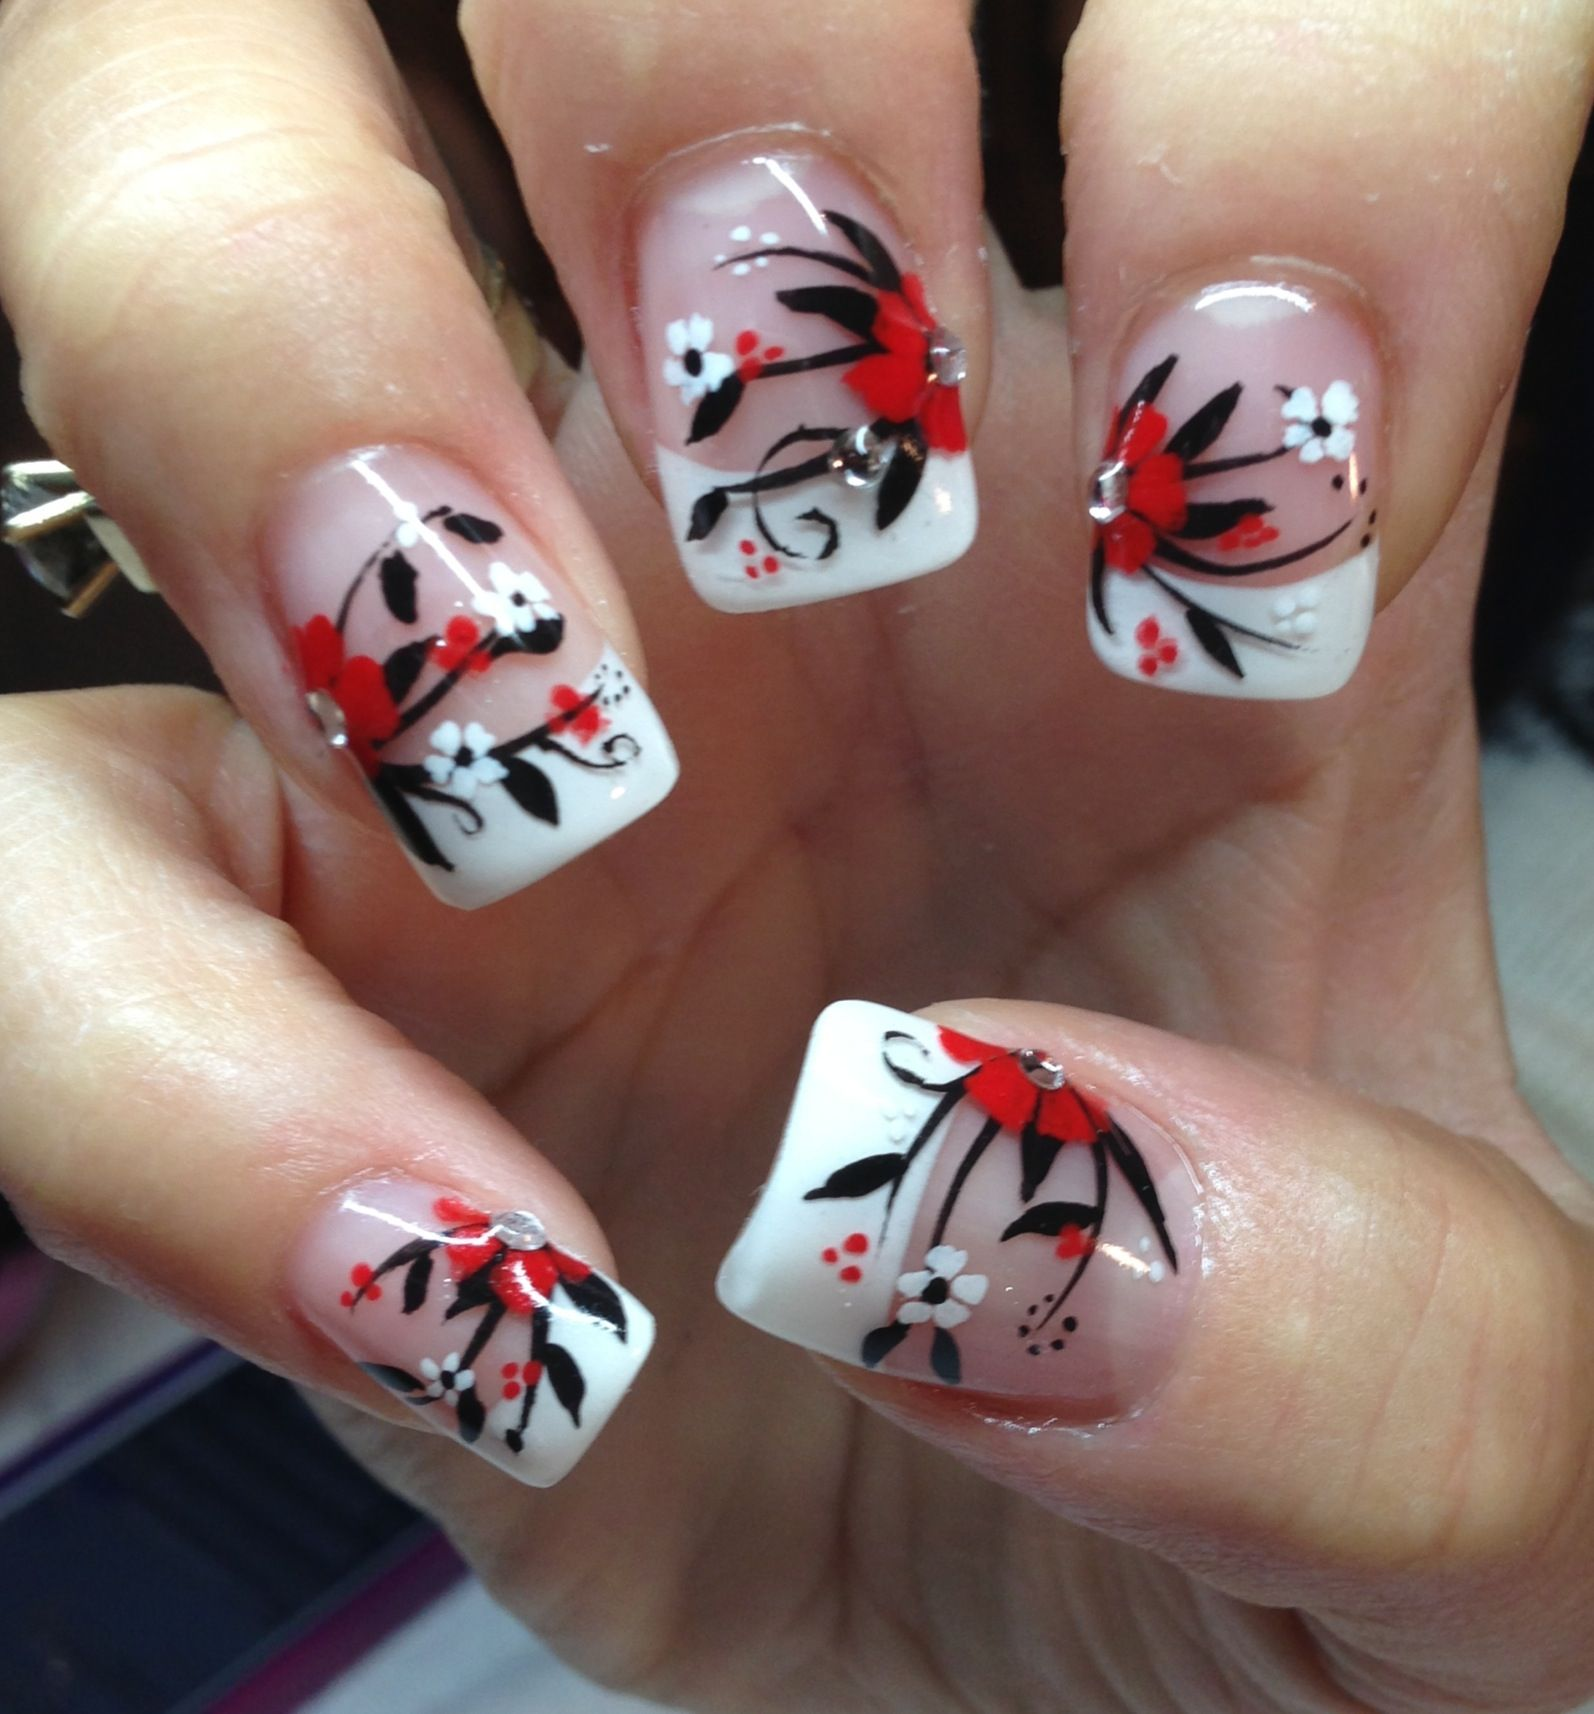 Robin moses inspired. By strawberry swirl | nails & more nails ...